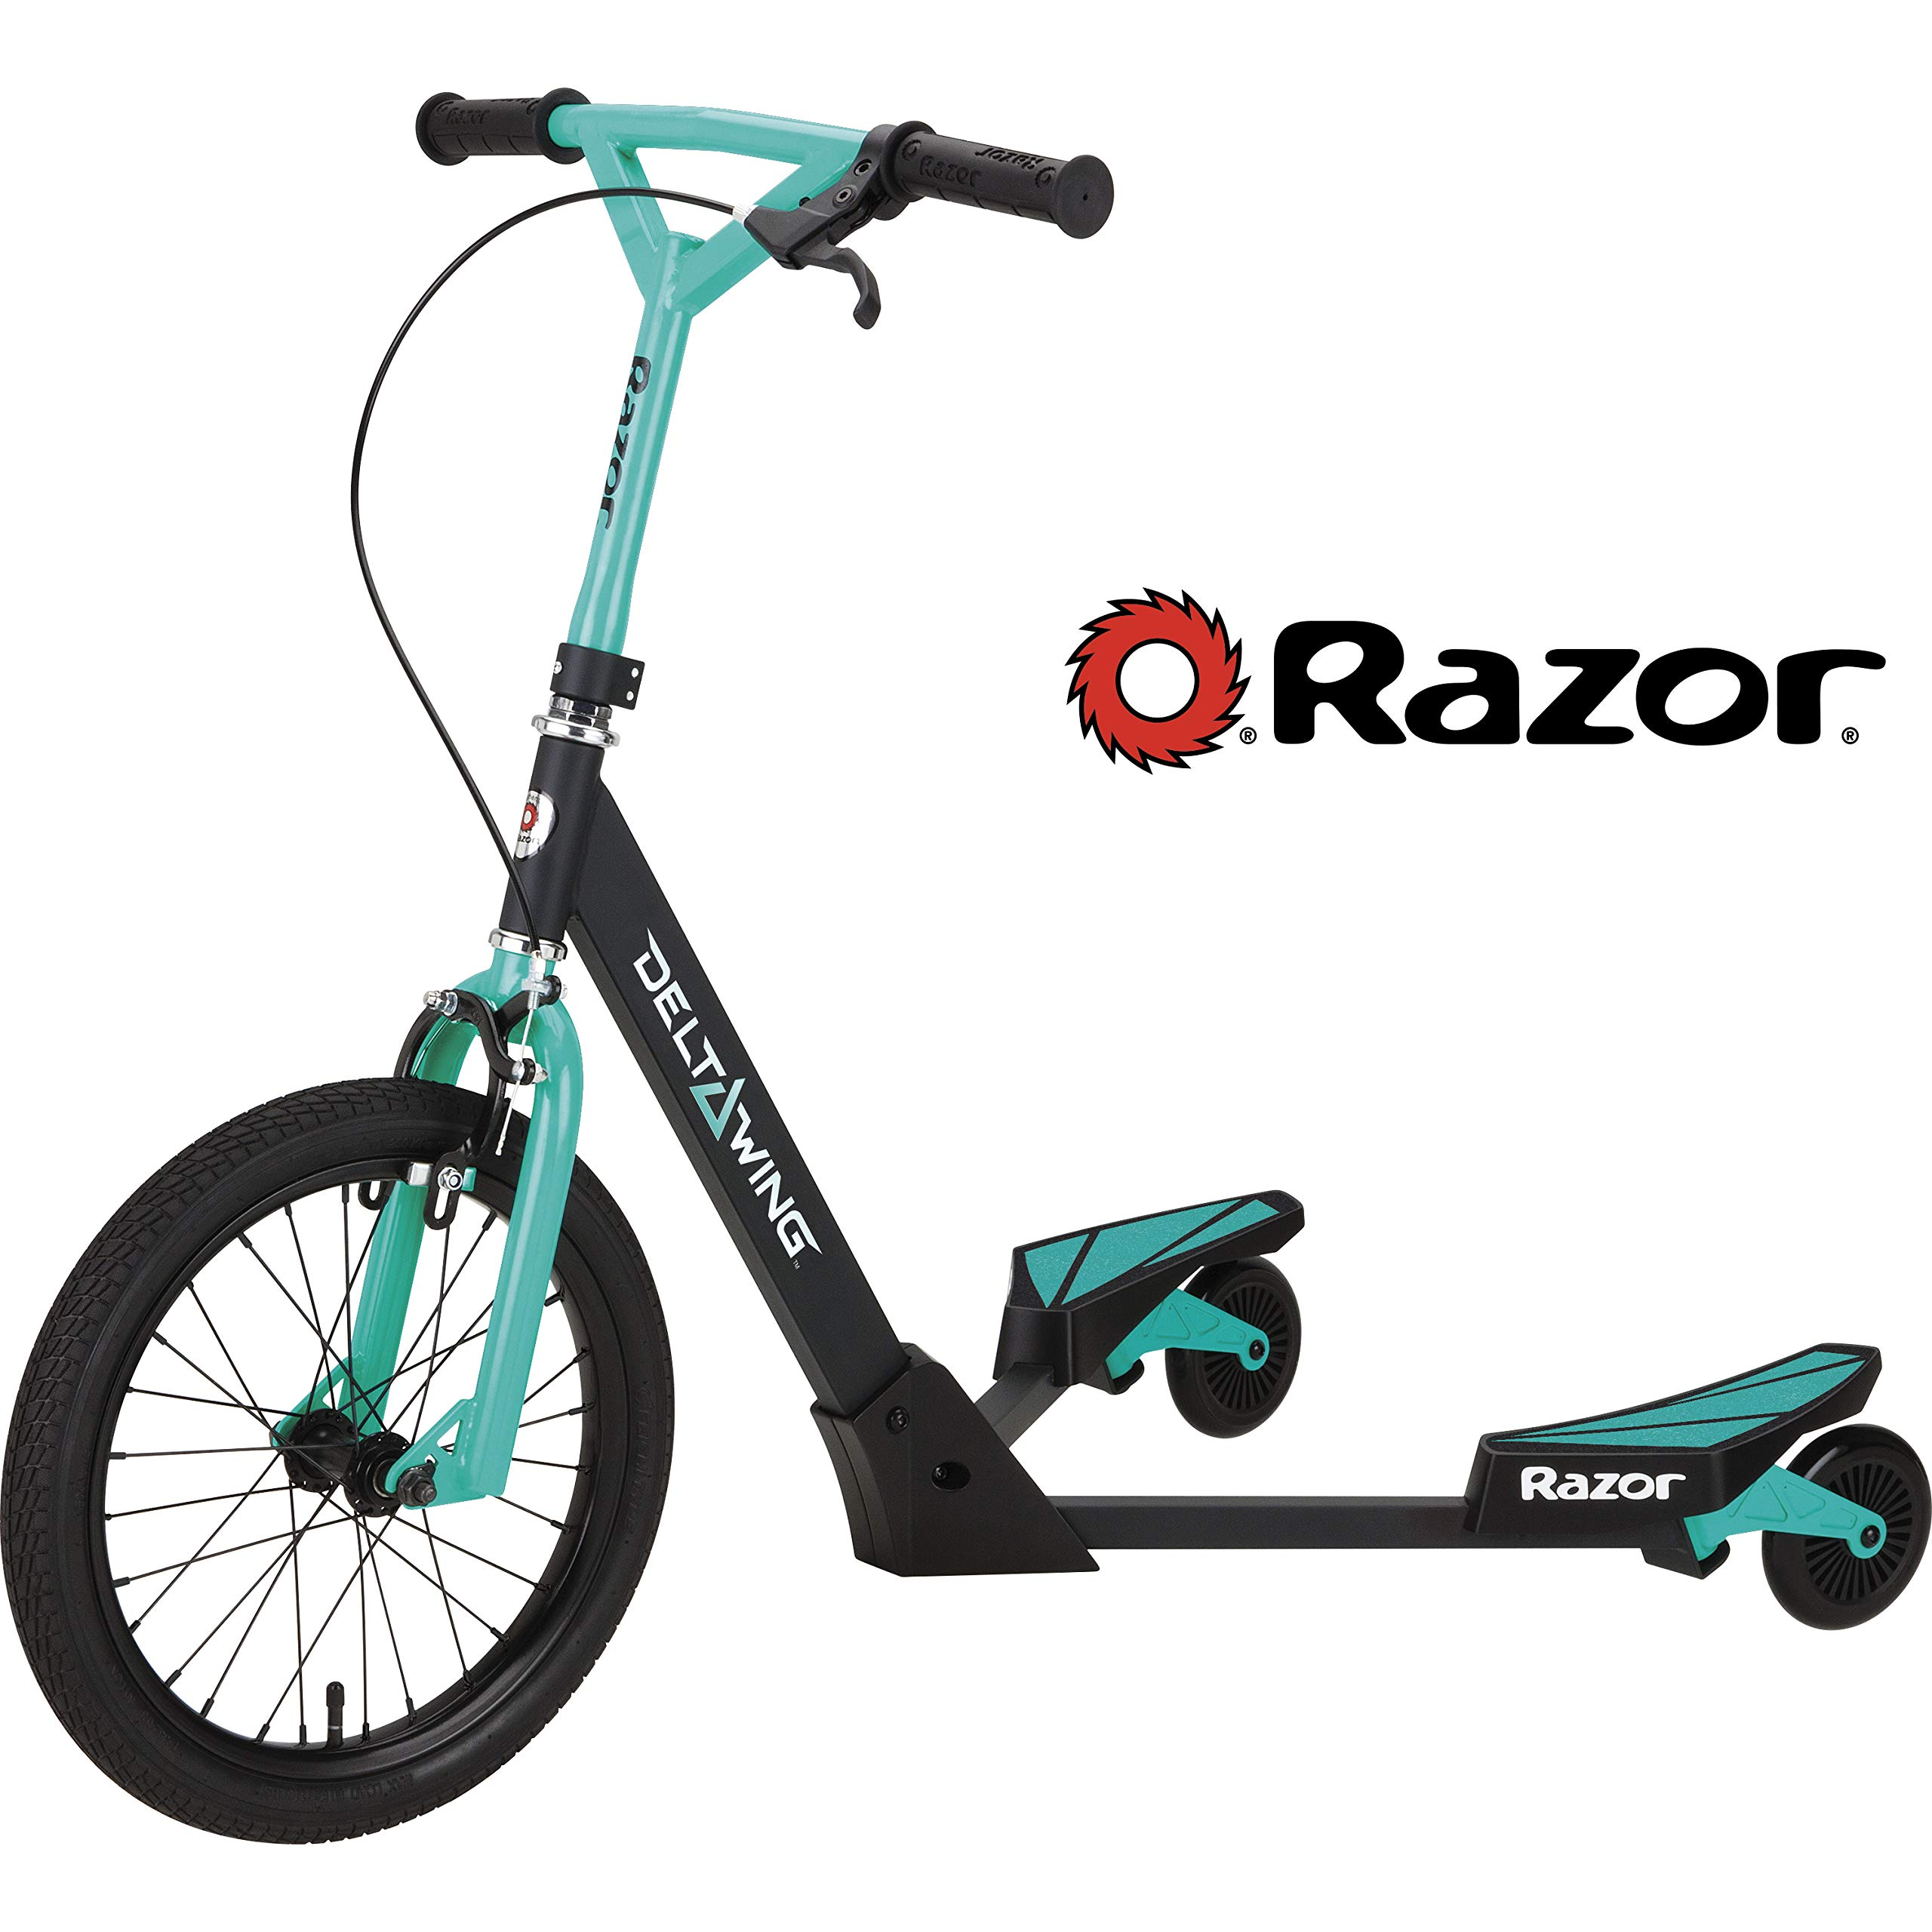 Razor 20036007 DeltaWing Scooter